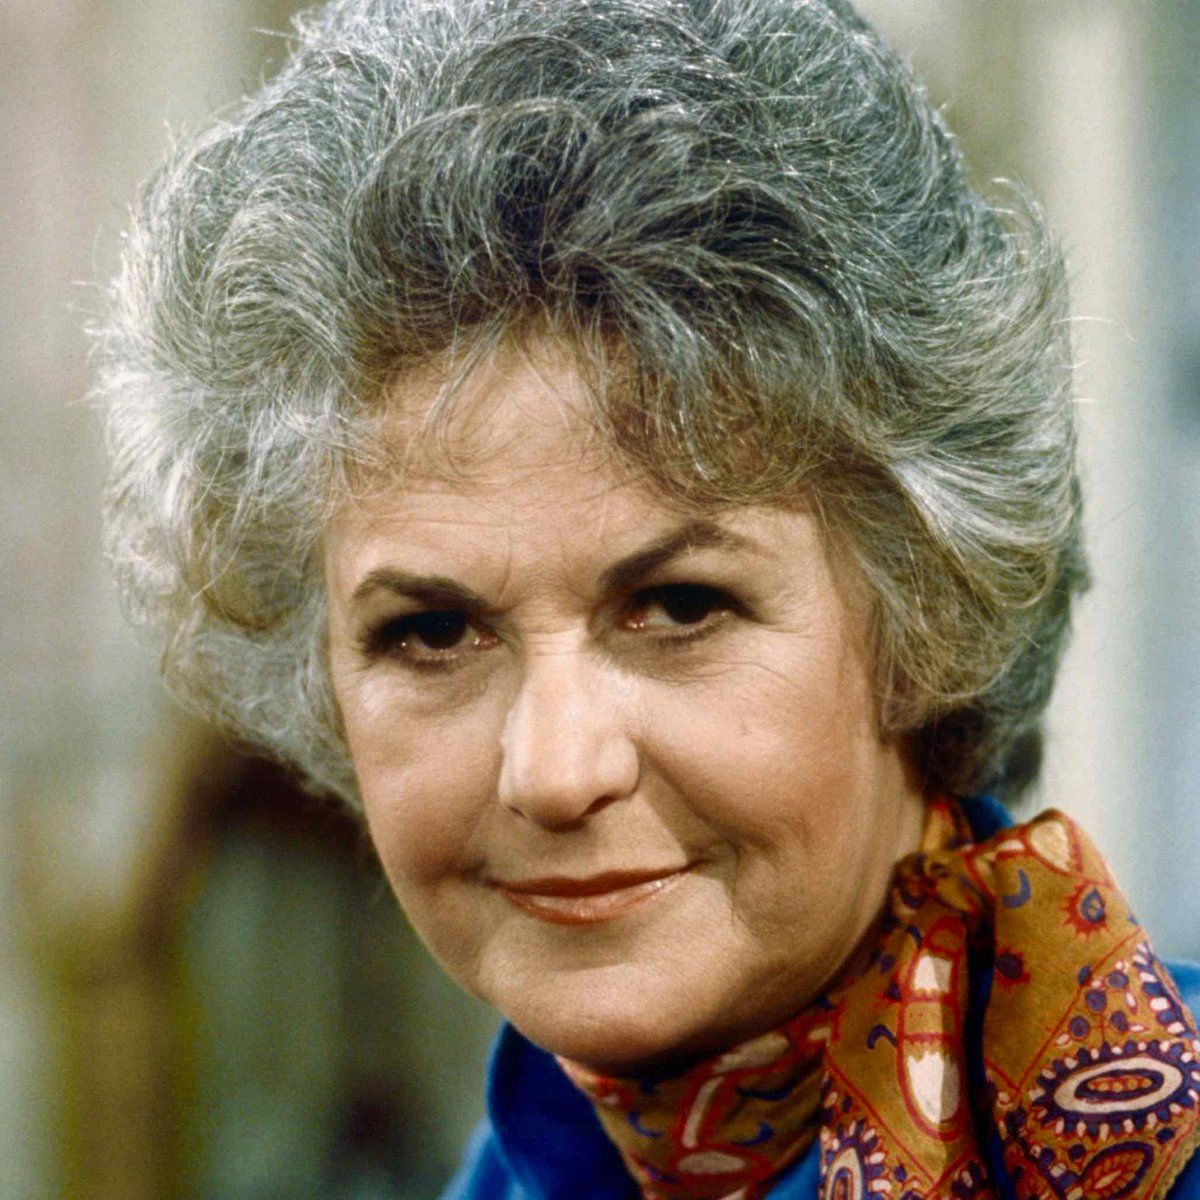 #BeaArthur (1922–2009) would have been 98 today. Thank you for being a friend. ❤️ #GoldenGirls #Maude